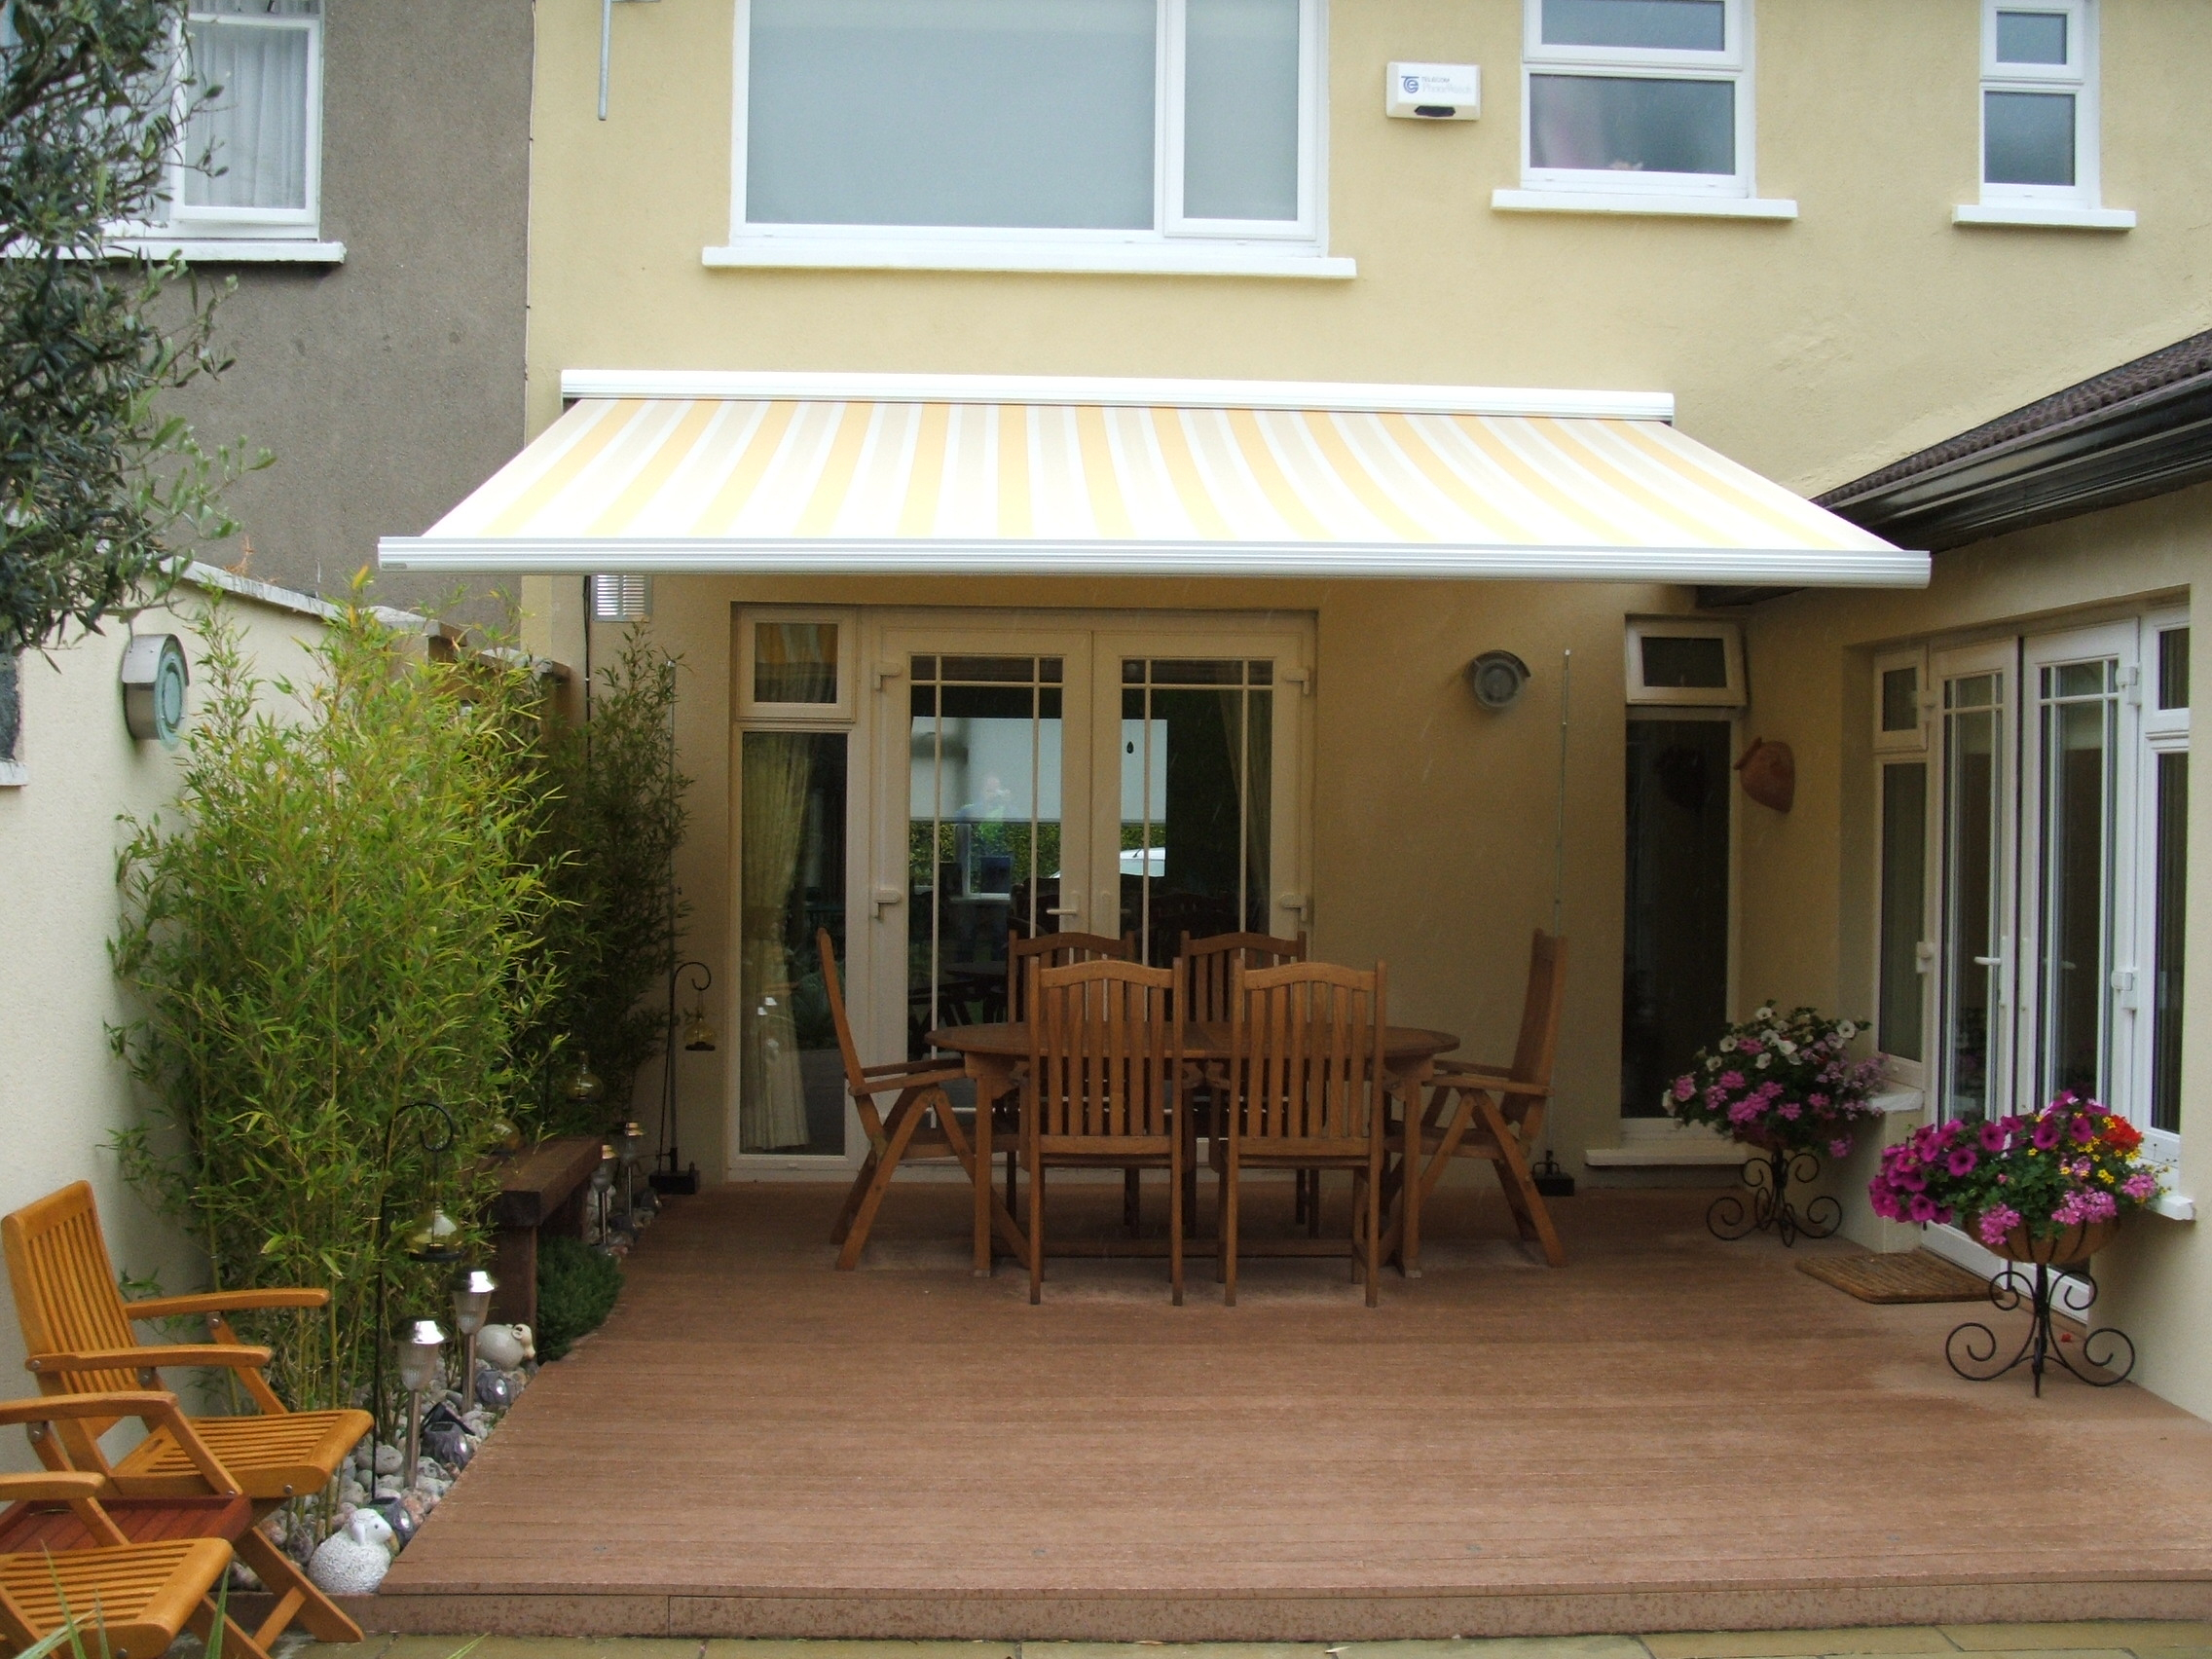 Design And Combination For Backyard Awnings Home Decor throughout Backyard Awning Ideas